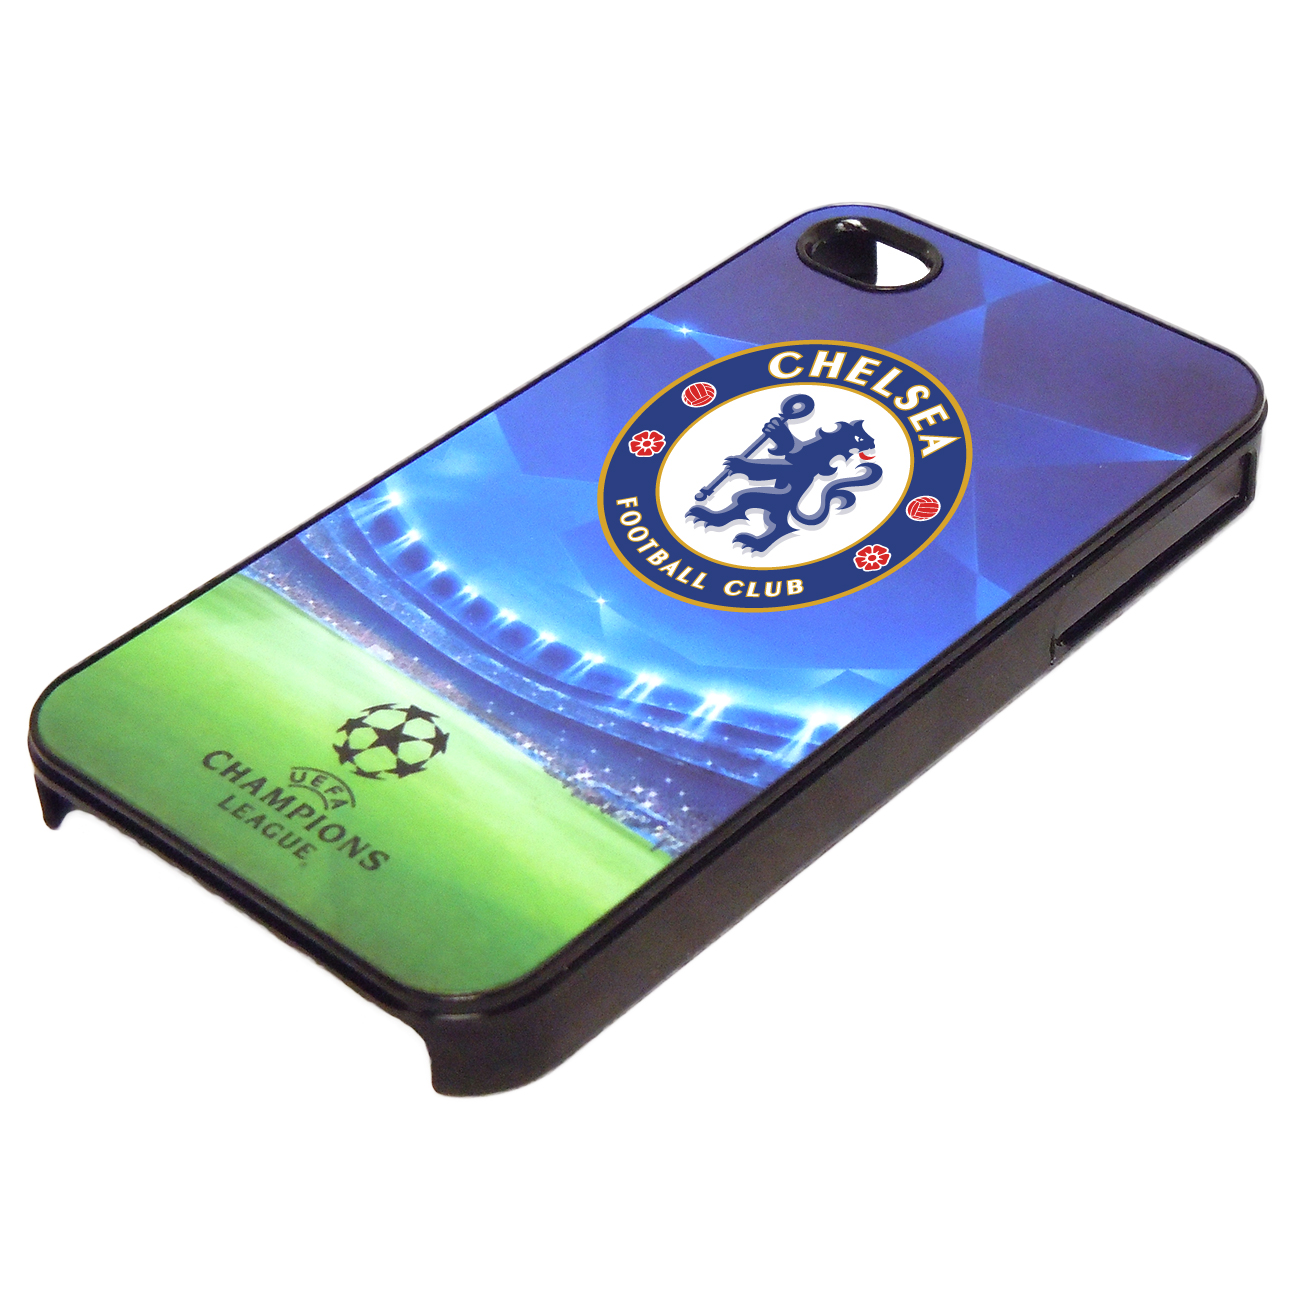 Chelsea UEFA Champions League IPhone 4 Phone Cover